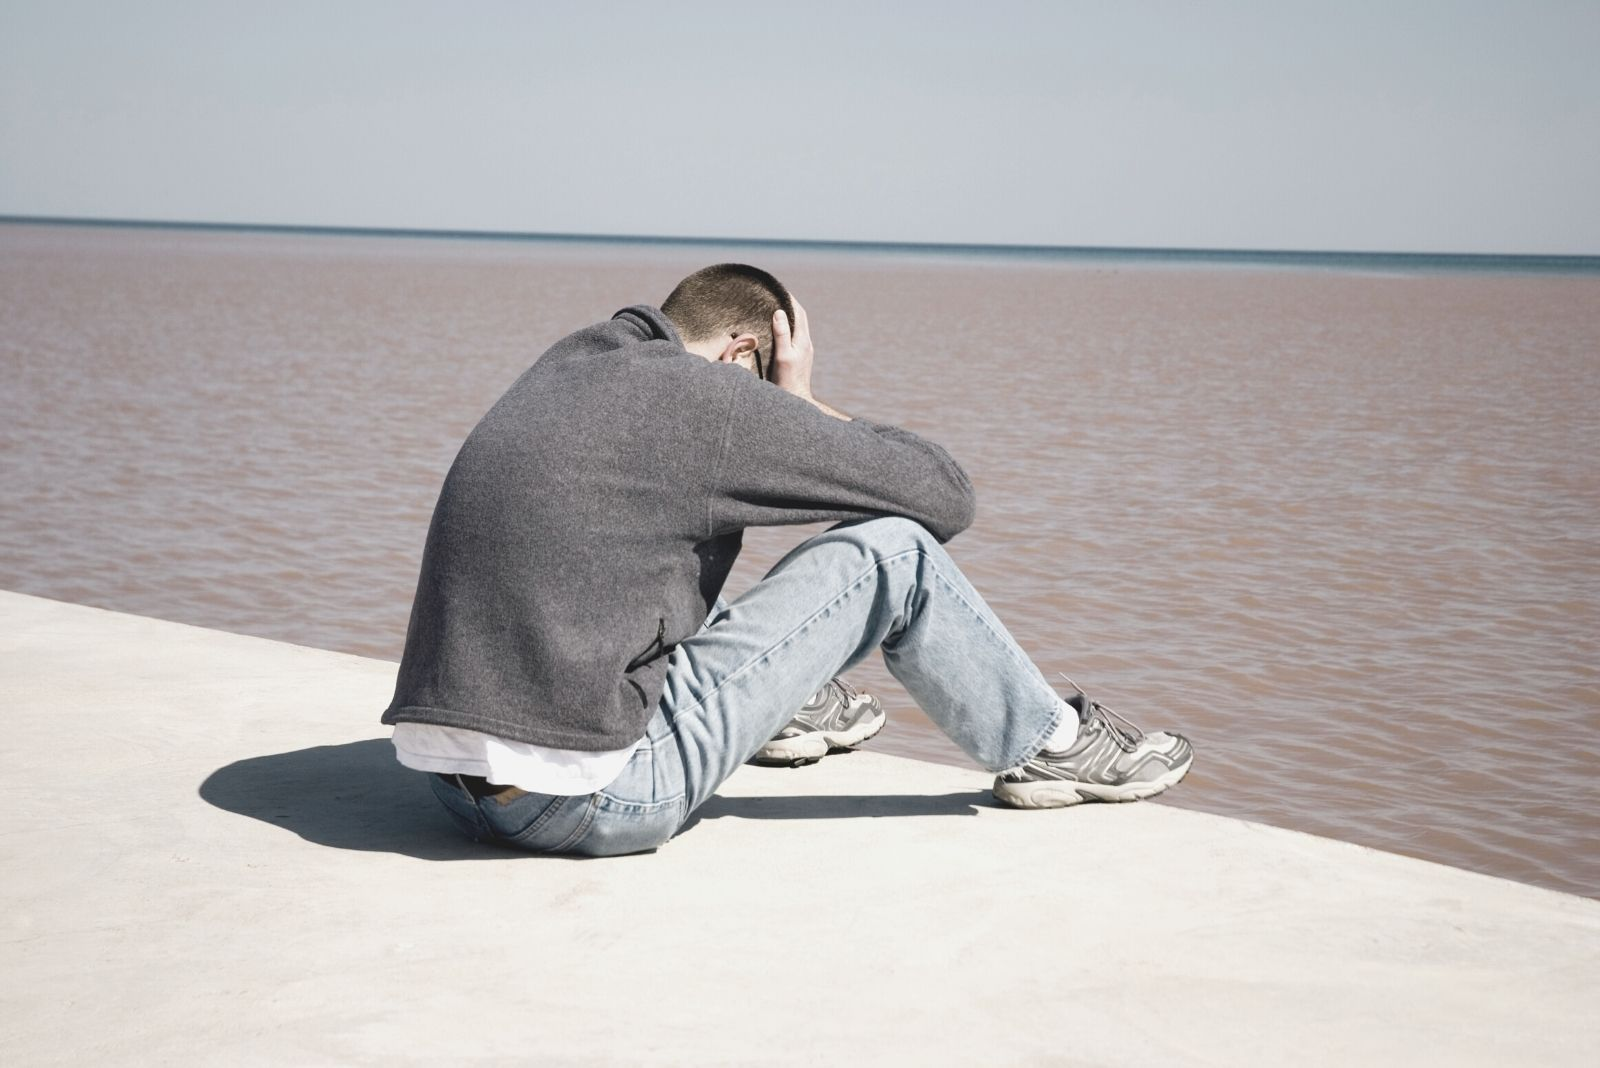 upset man sitting on the platform near the body of water with hand on his head